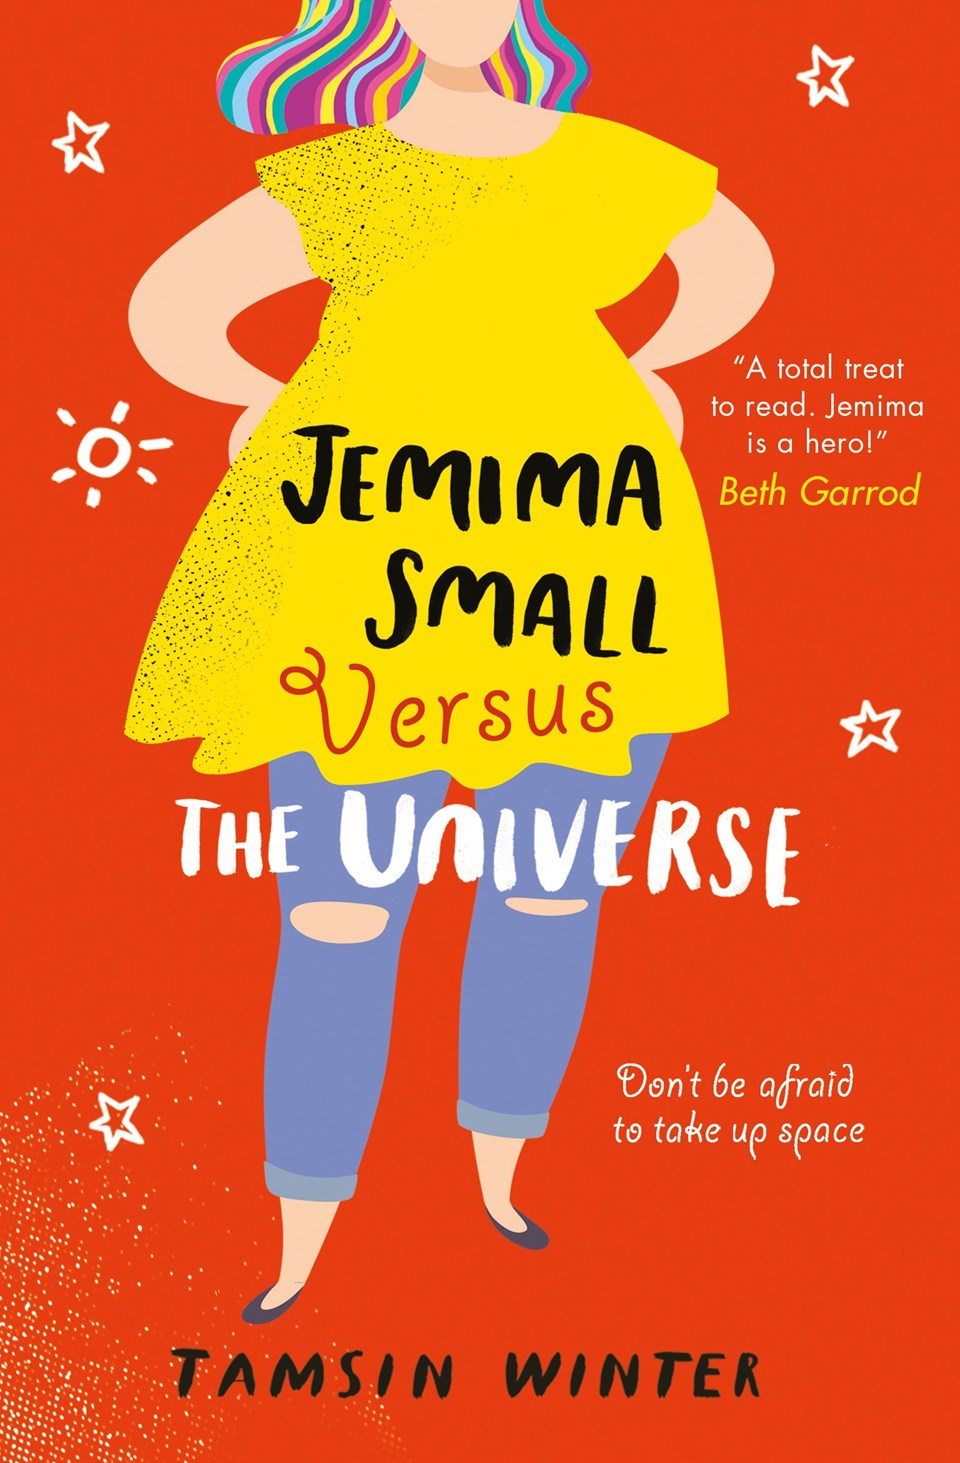 Tamsin Winter Guest Post – Jemima Small Versus the Universe